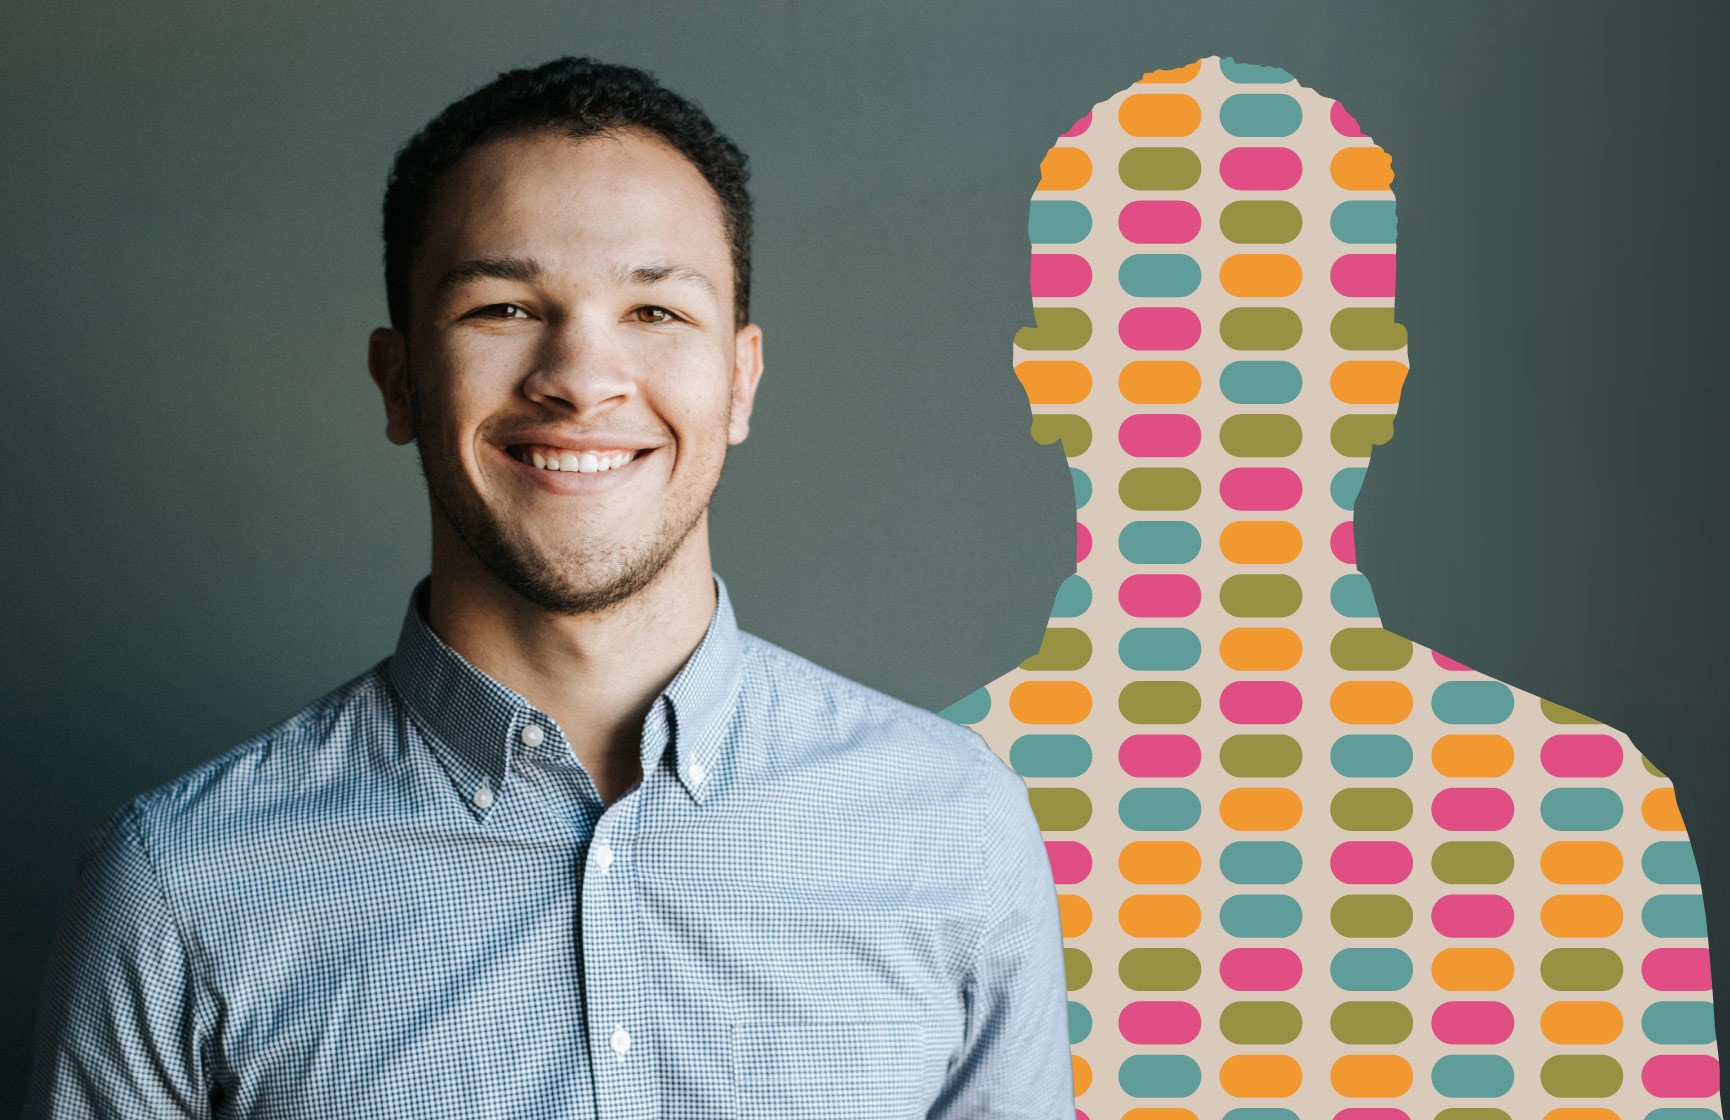 A photo of a young man alongside a graphic illustration of his DNA sequence